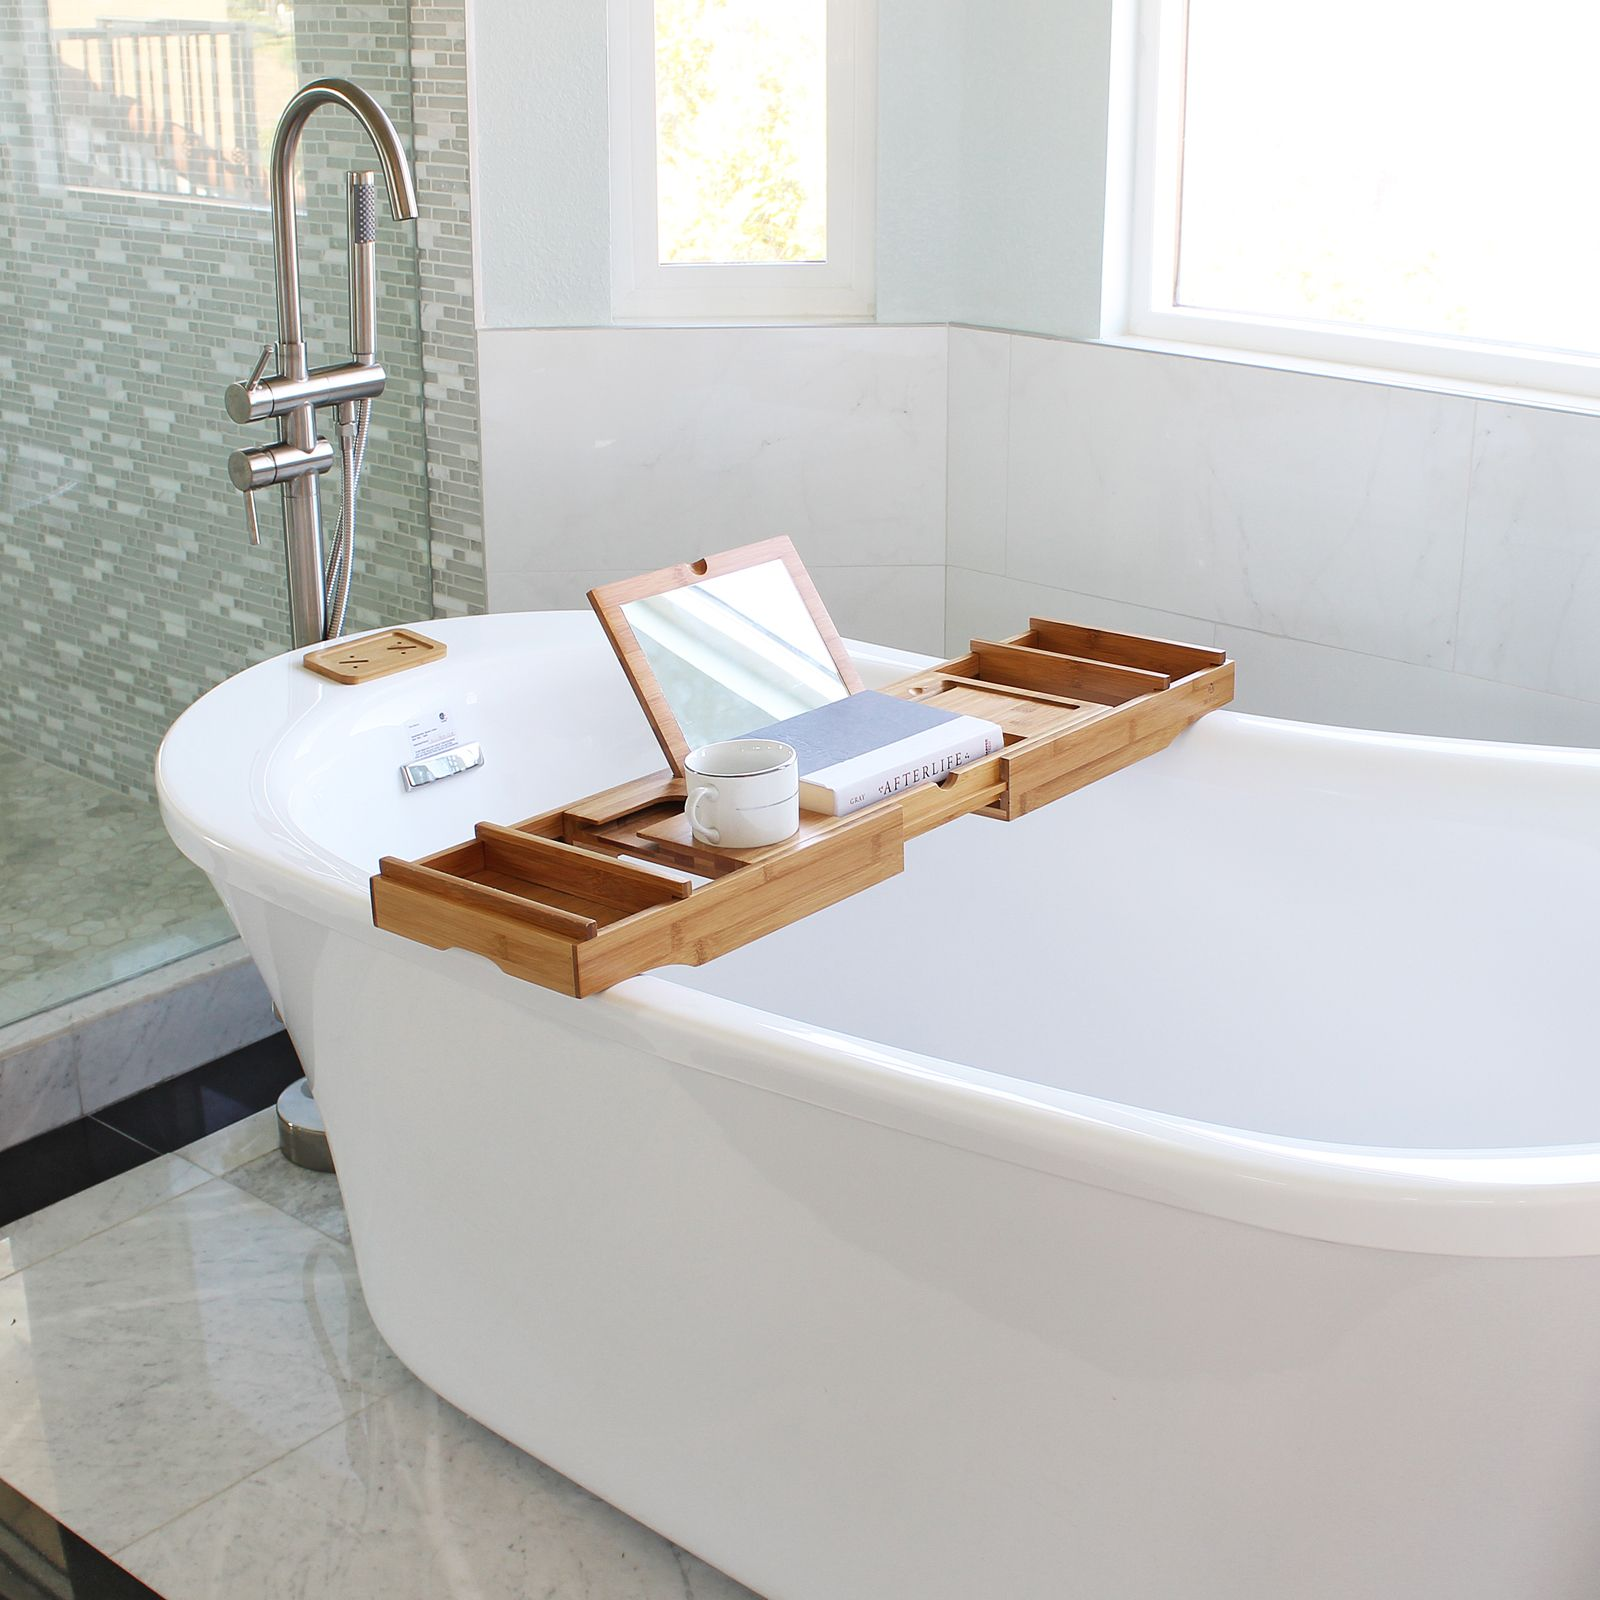 Welland Bamboo Bathtub Caddy, Expandable #bamboobathcaddy #bathcaddy # Bathtub #bathroom #bath